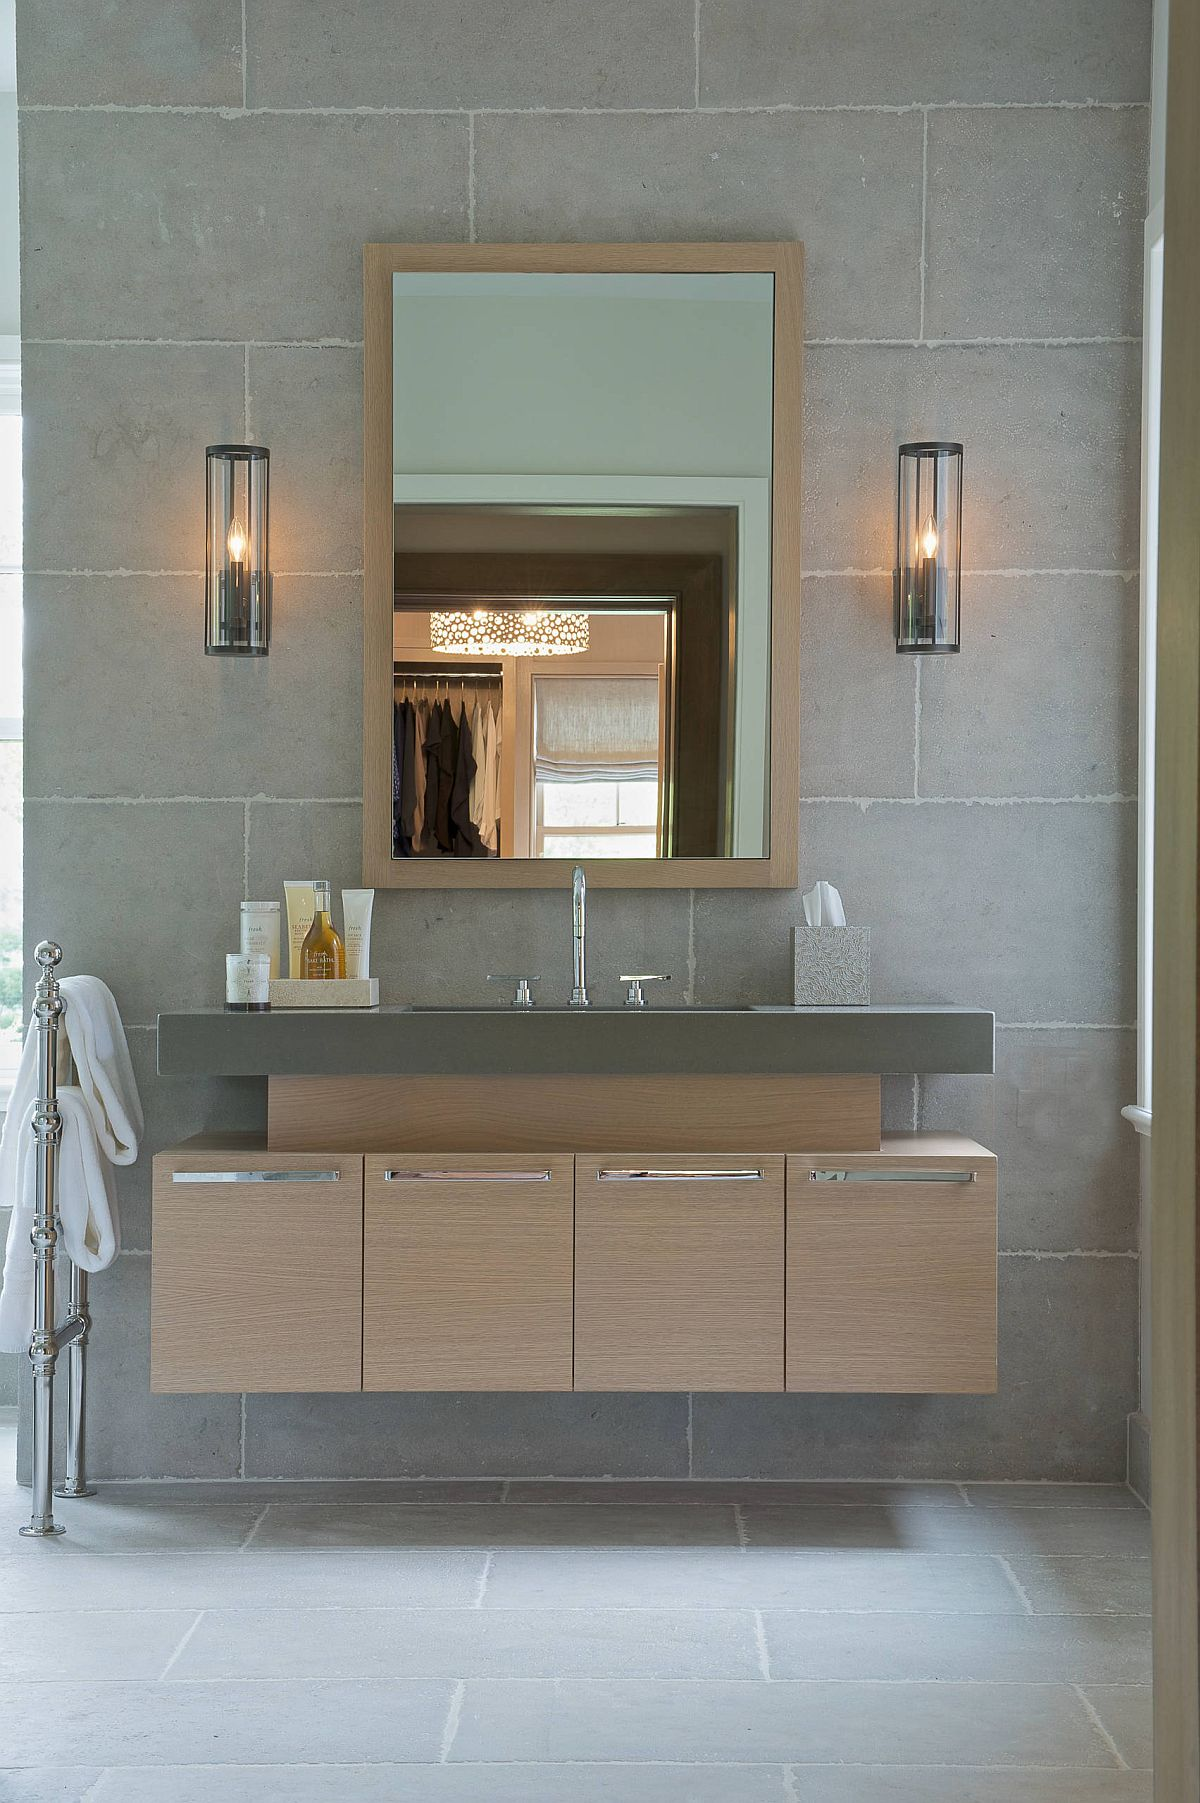 Style-and-size-of-the-sconce-lights-depends-as-much-on-the-style-of-the-bathroom-as-on-dimensions-78283